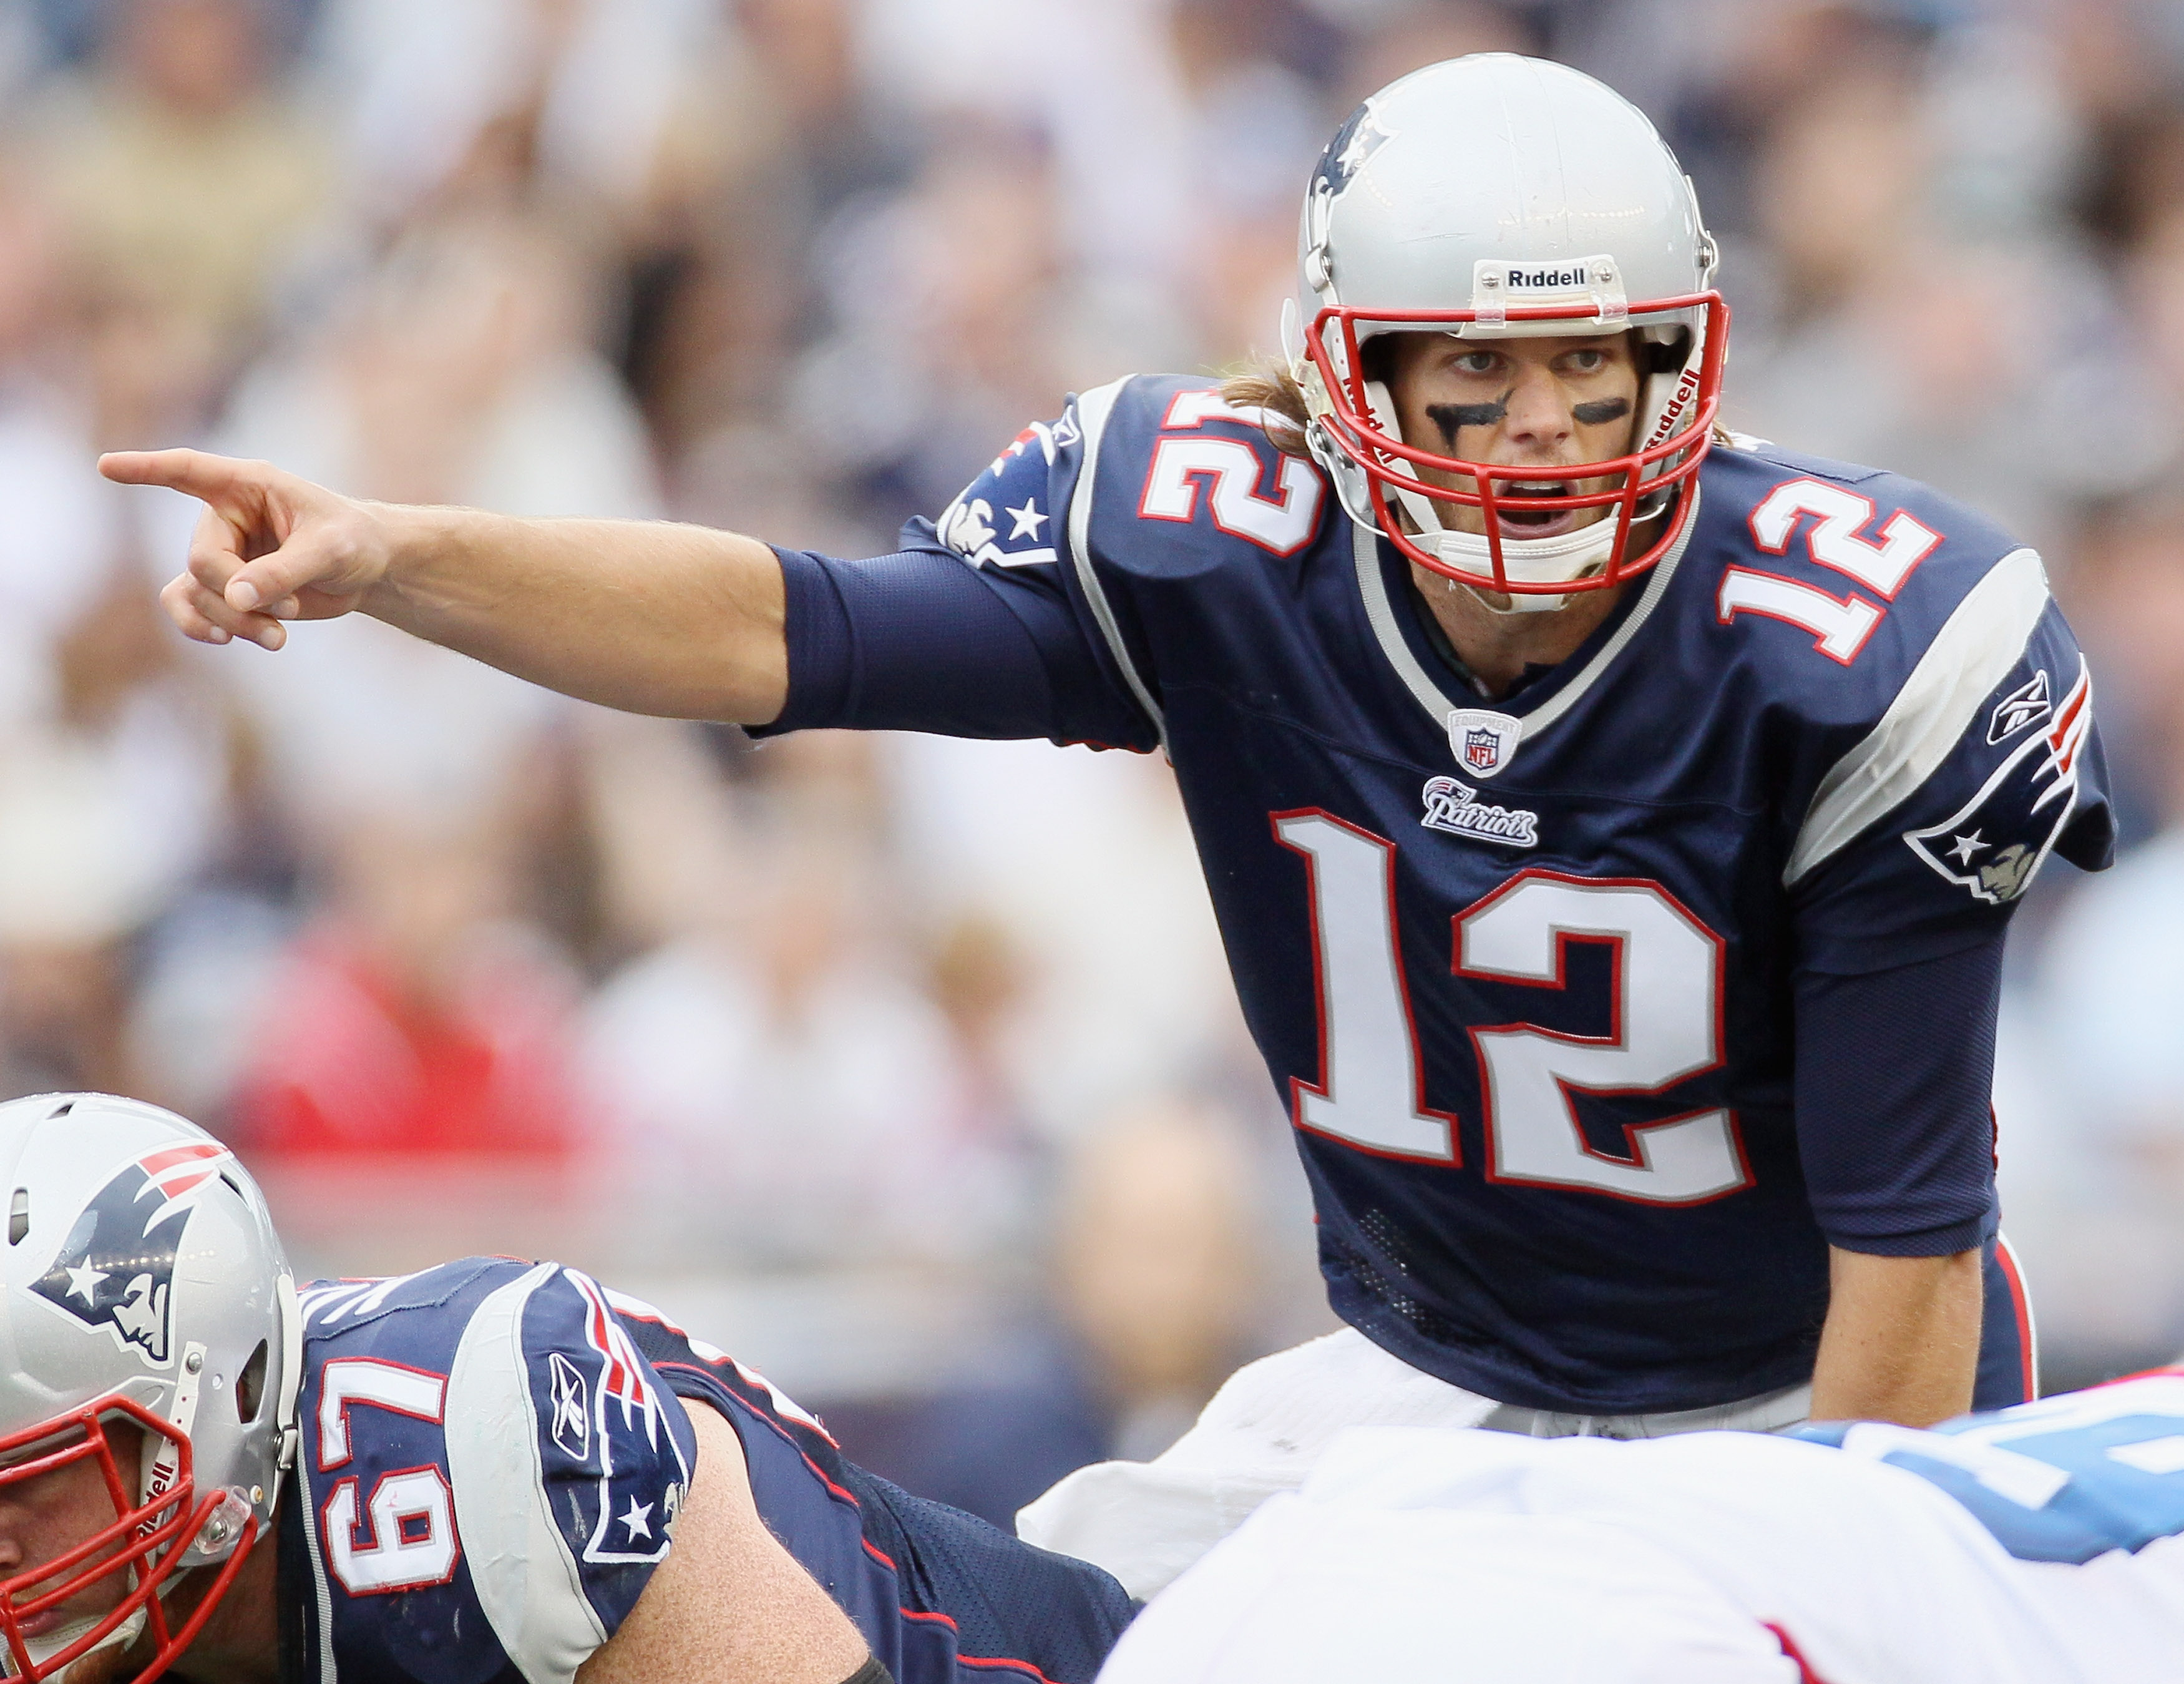 FOXBORO, MA - SEPTEMBER 26:  Tom Brady #12 of the New England Patriots calls out the play in the third quarter against the Buffalo Bills during on September 26, 2010 at Gillette Stadium in Foxboro, Massachusetts. The Patriots defeated the Bills 38-30.  (P